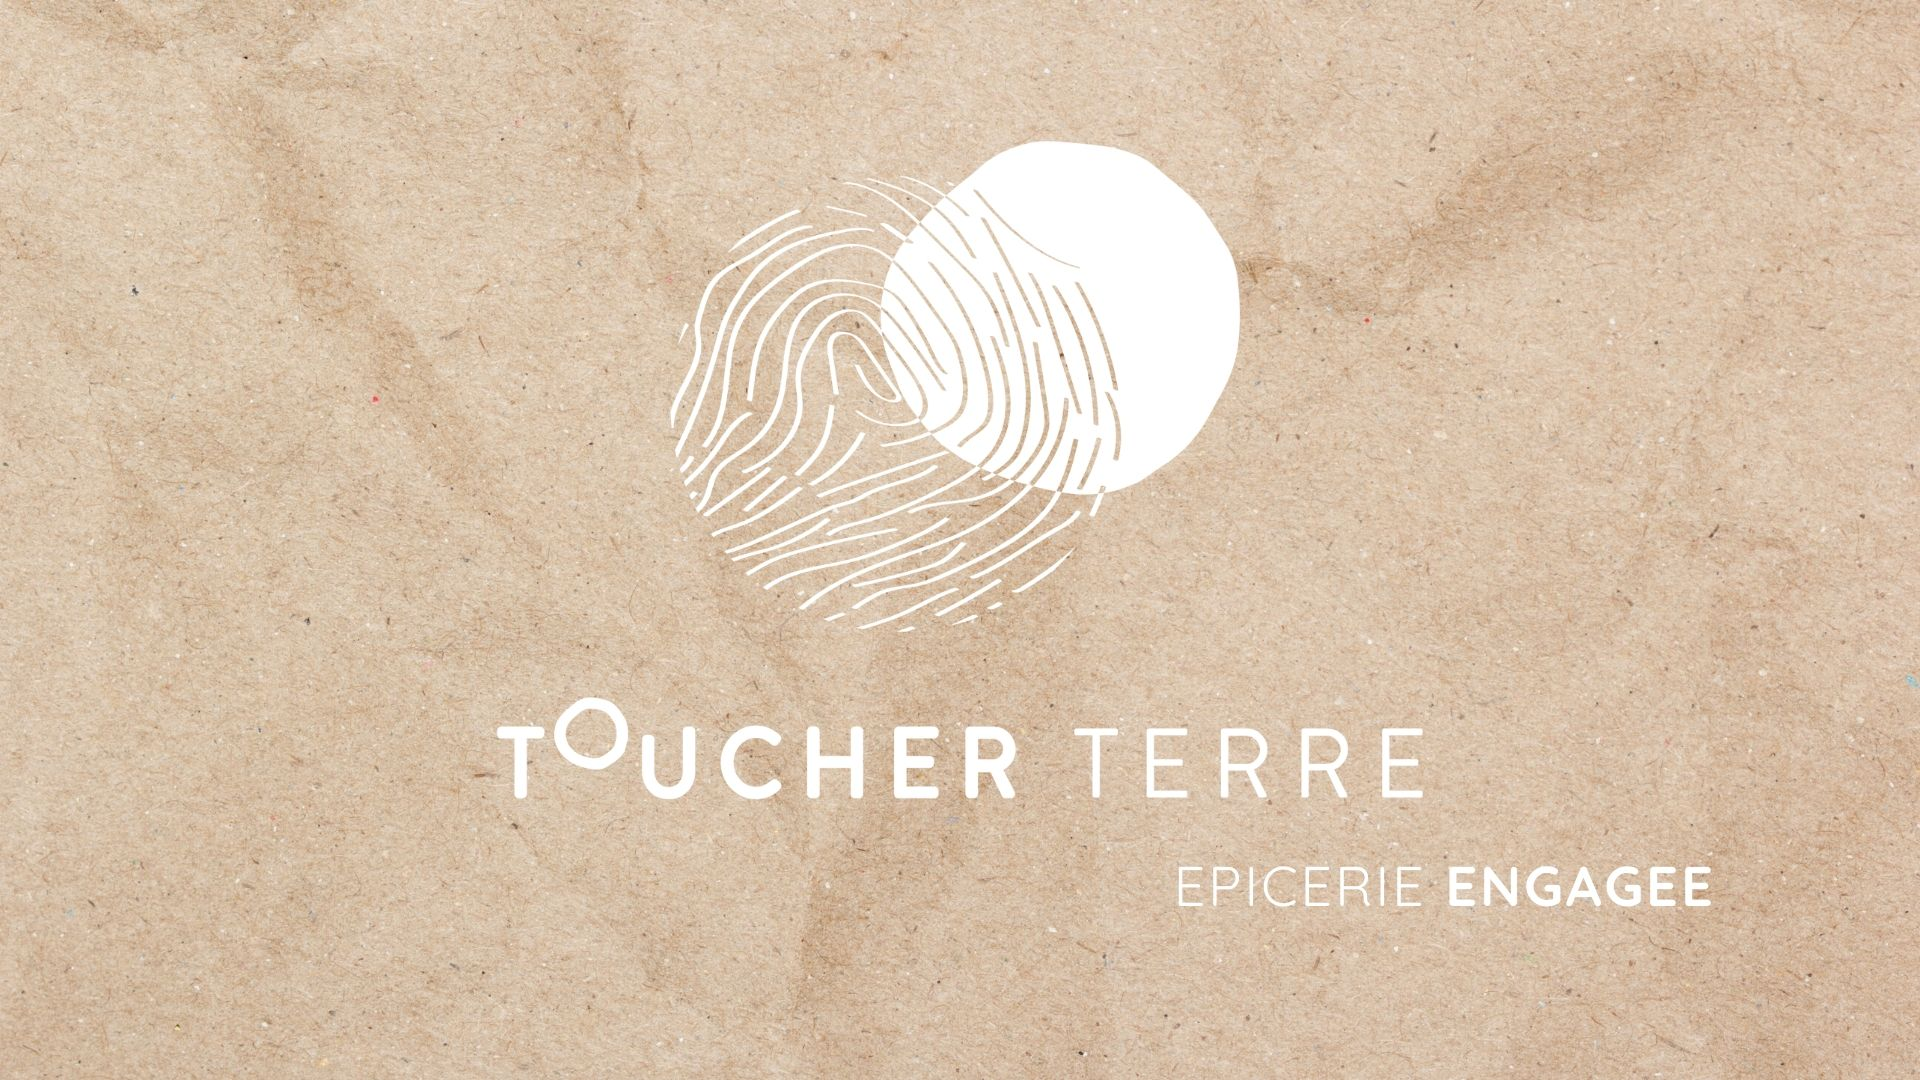 Toucher-terre-epicerie-engagee